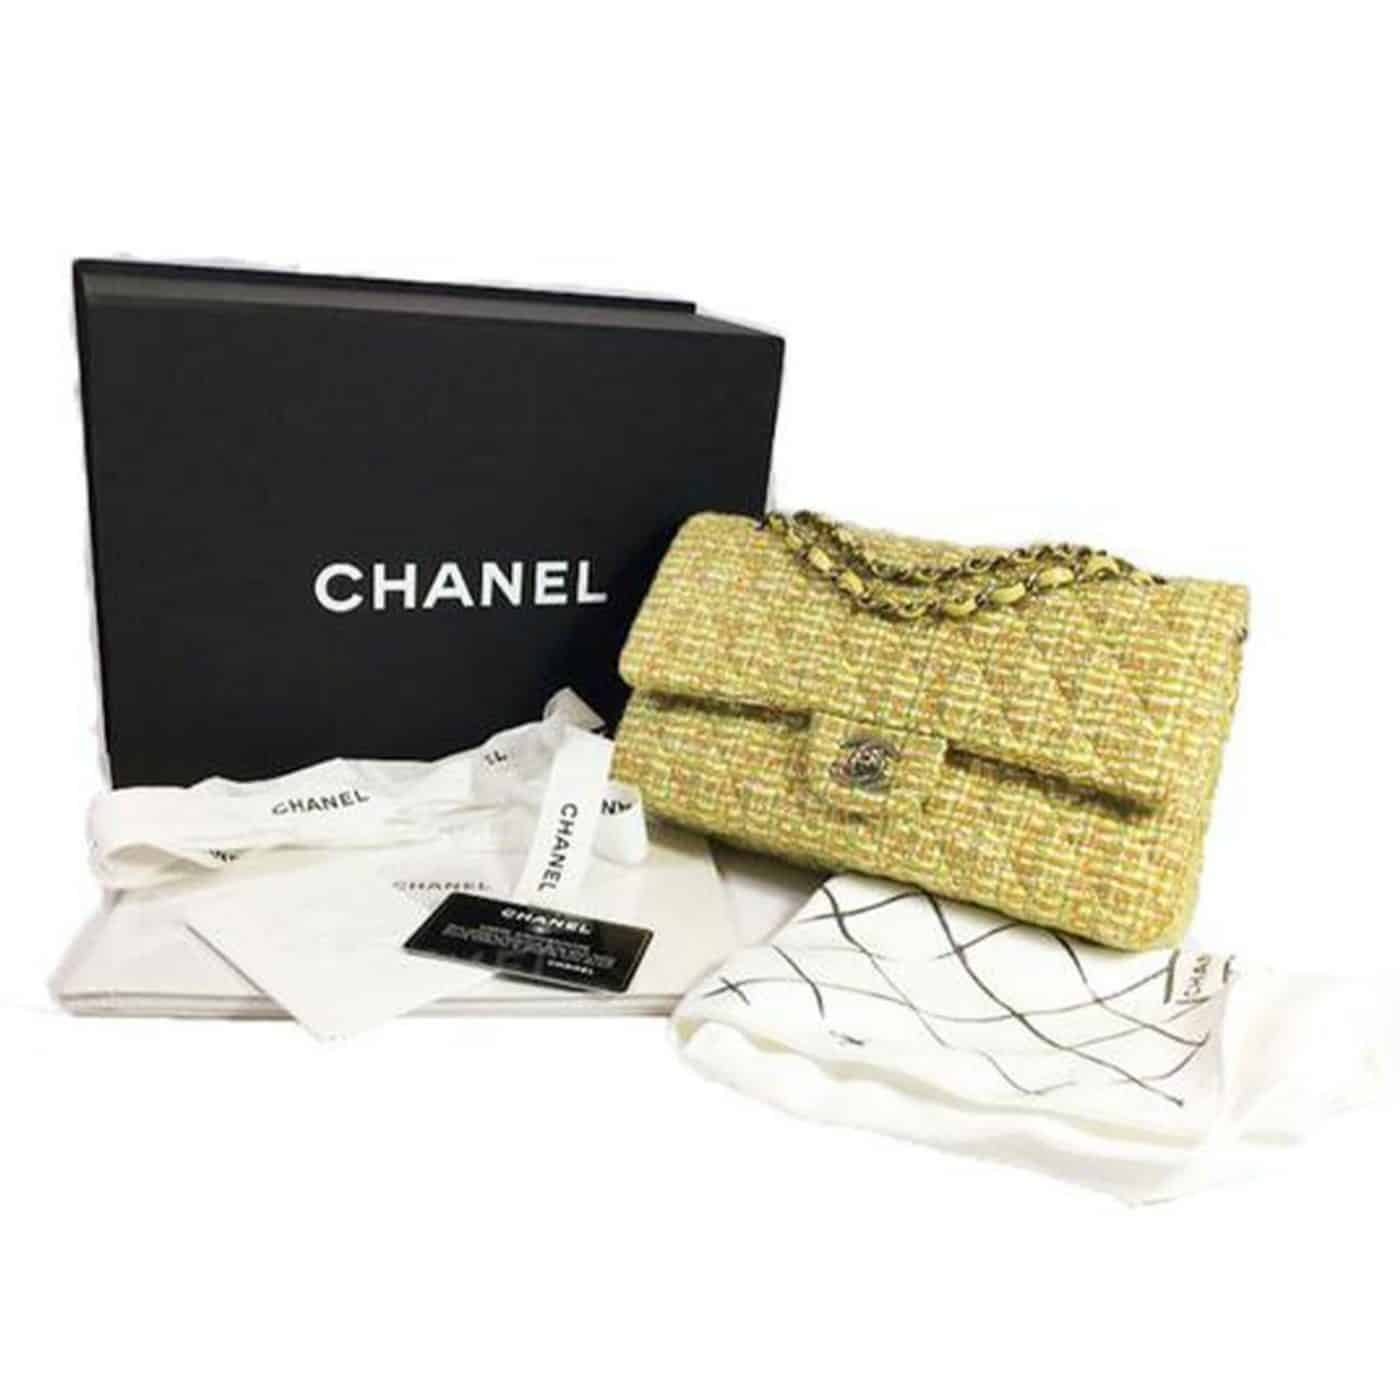 A vintage yellow tweed Chanel bag with its original packaging, offered by House of Carver